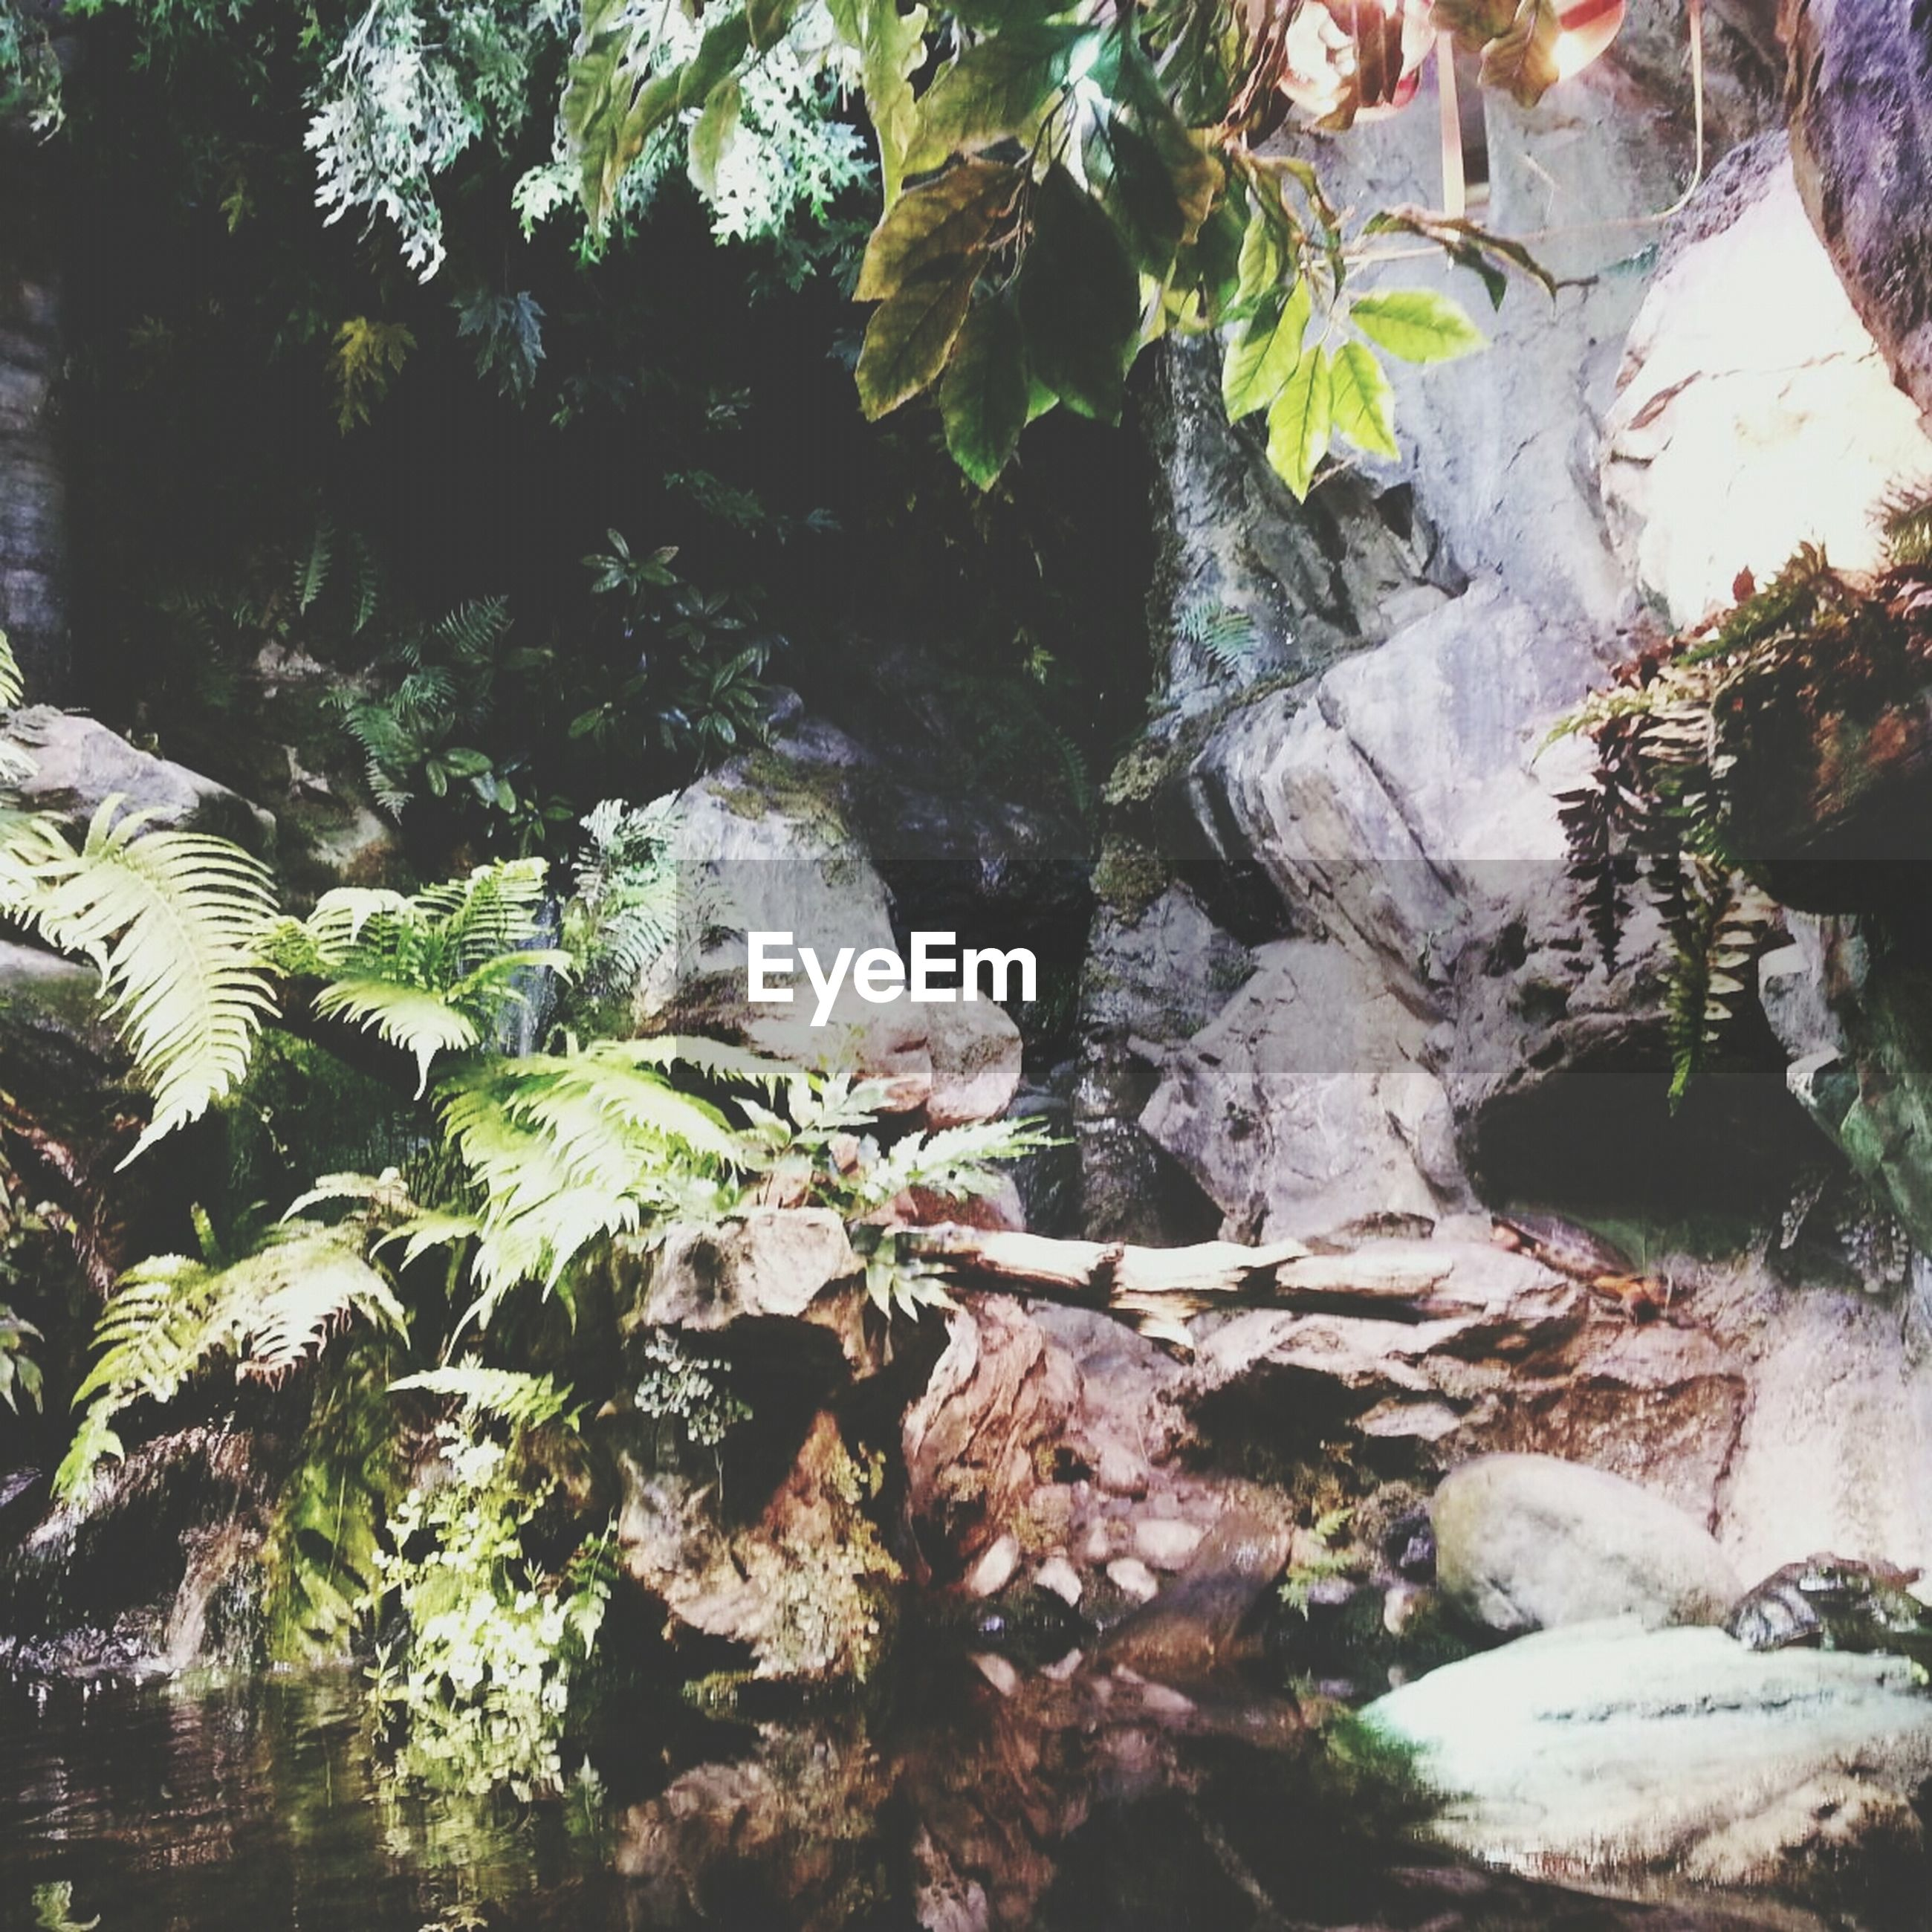 tree, water, nature, branch, growth, leaf, rock - object, plant, beauty in nature, tranquility, forest, day, outdoors, no people, moss, green color, stream, scenics, close-up, rock